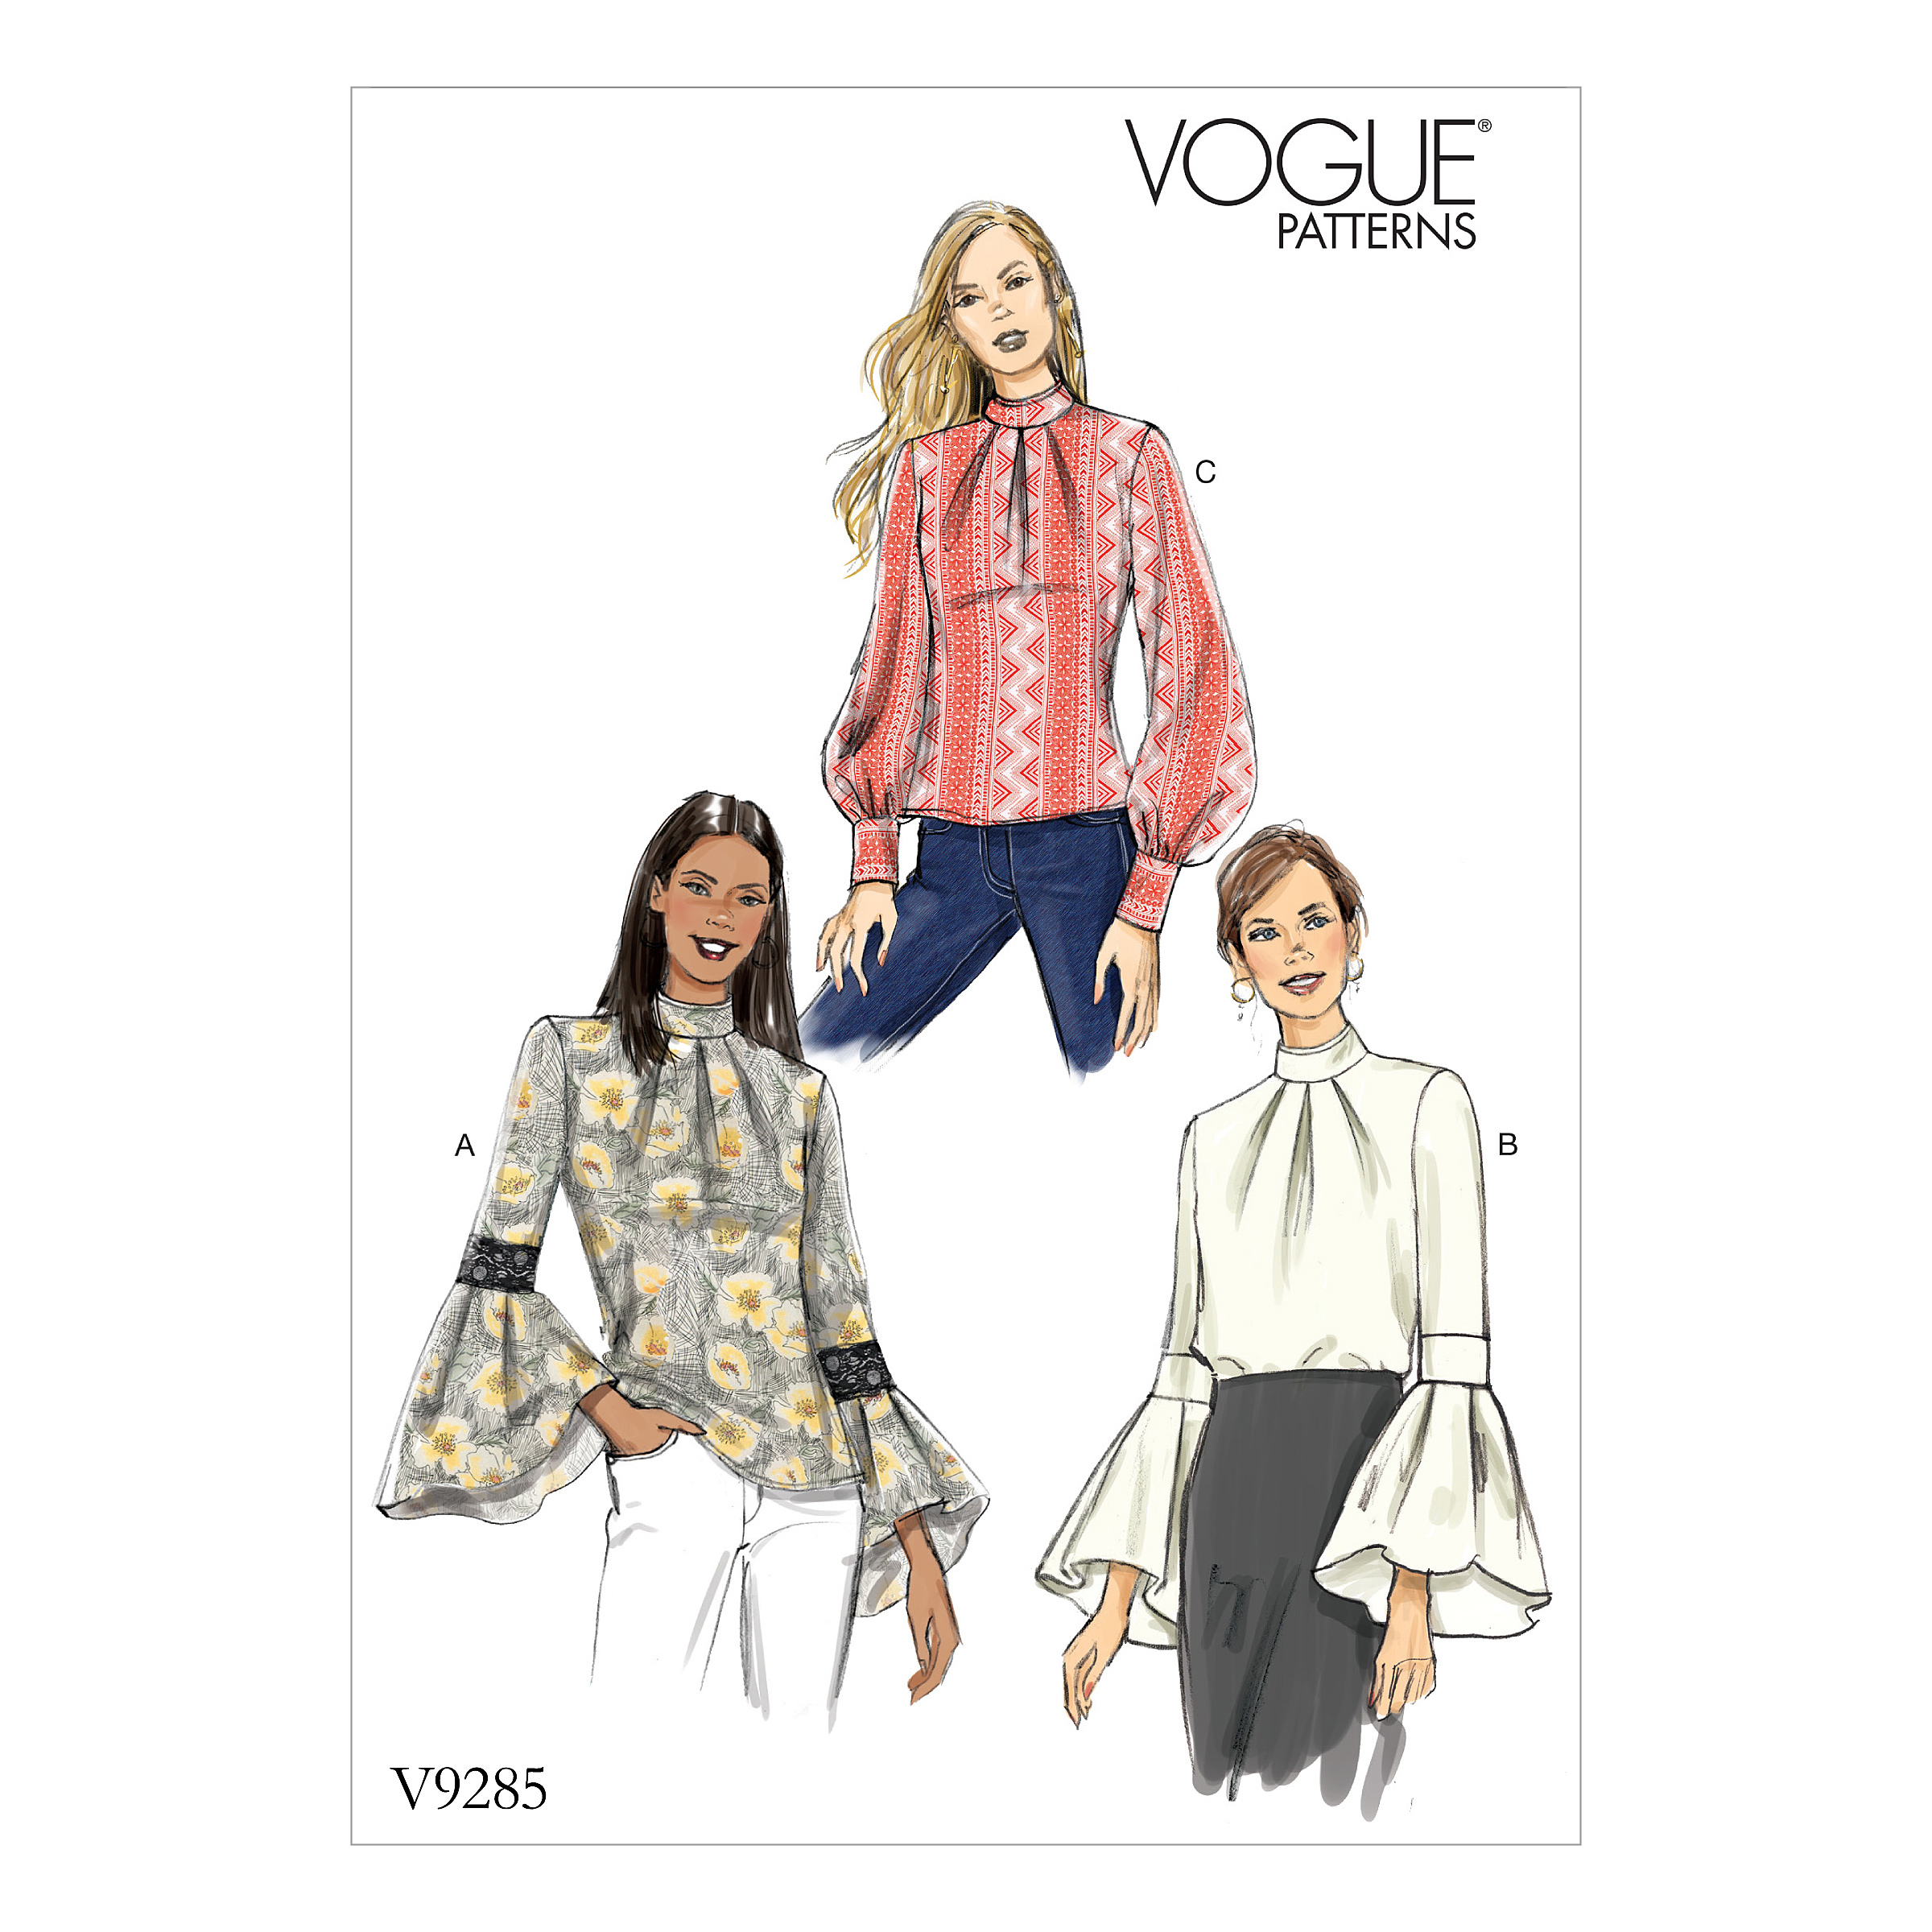 efb8f3cef9 Vogue Patterns 9285 MISSES' TOP WITH SLEEVE AND CUFF ...